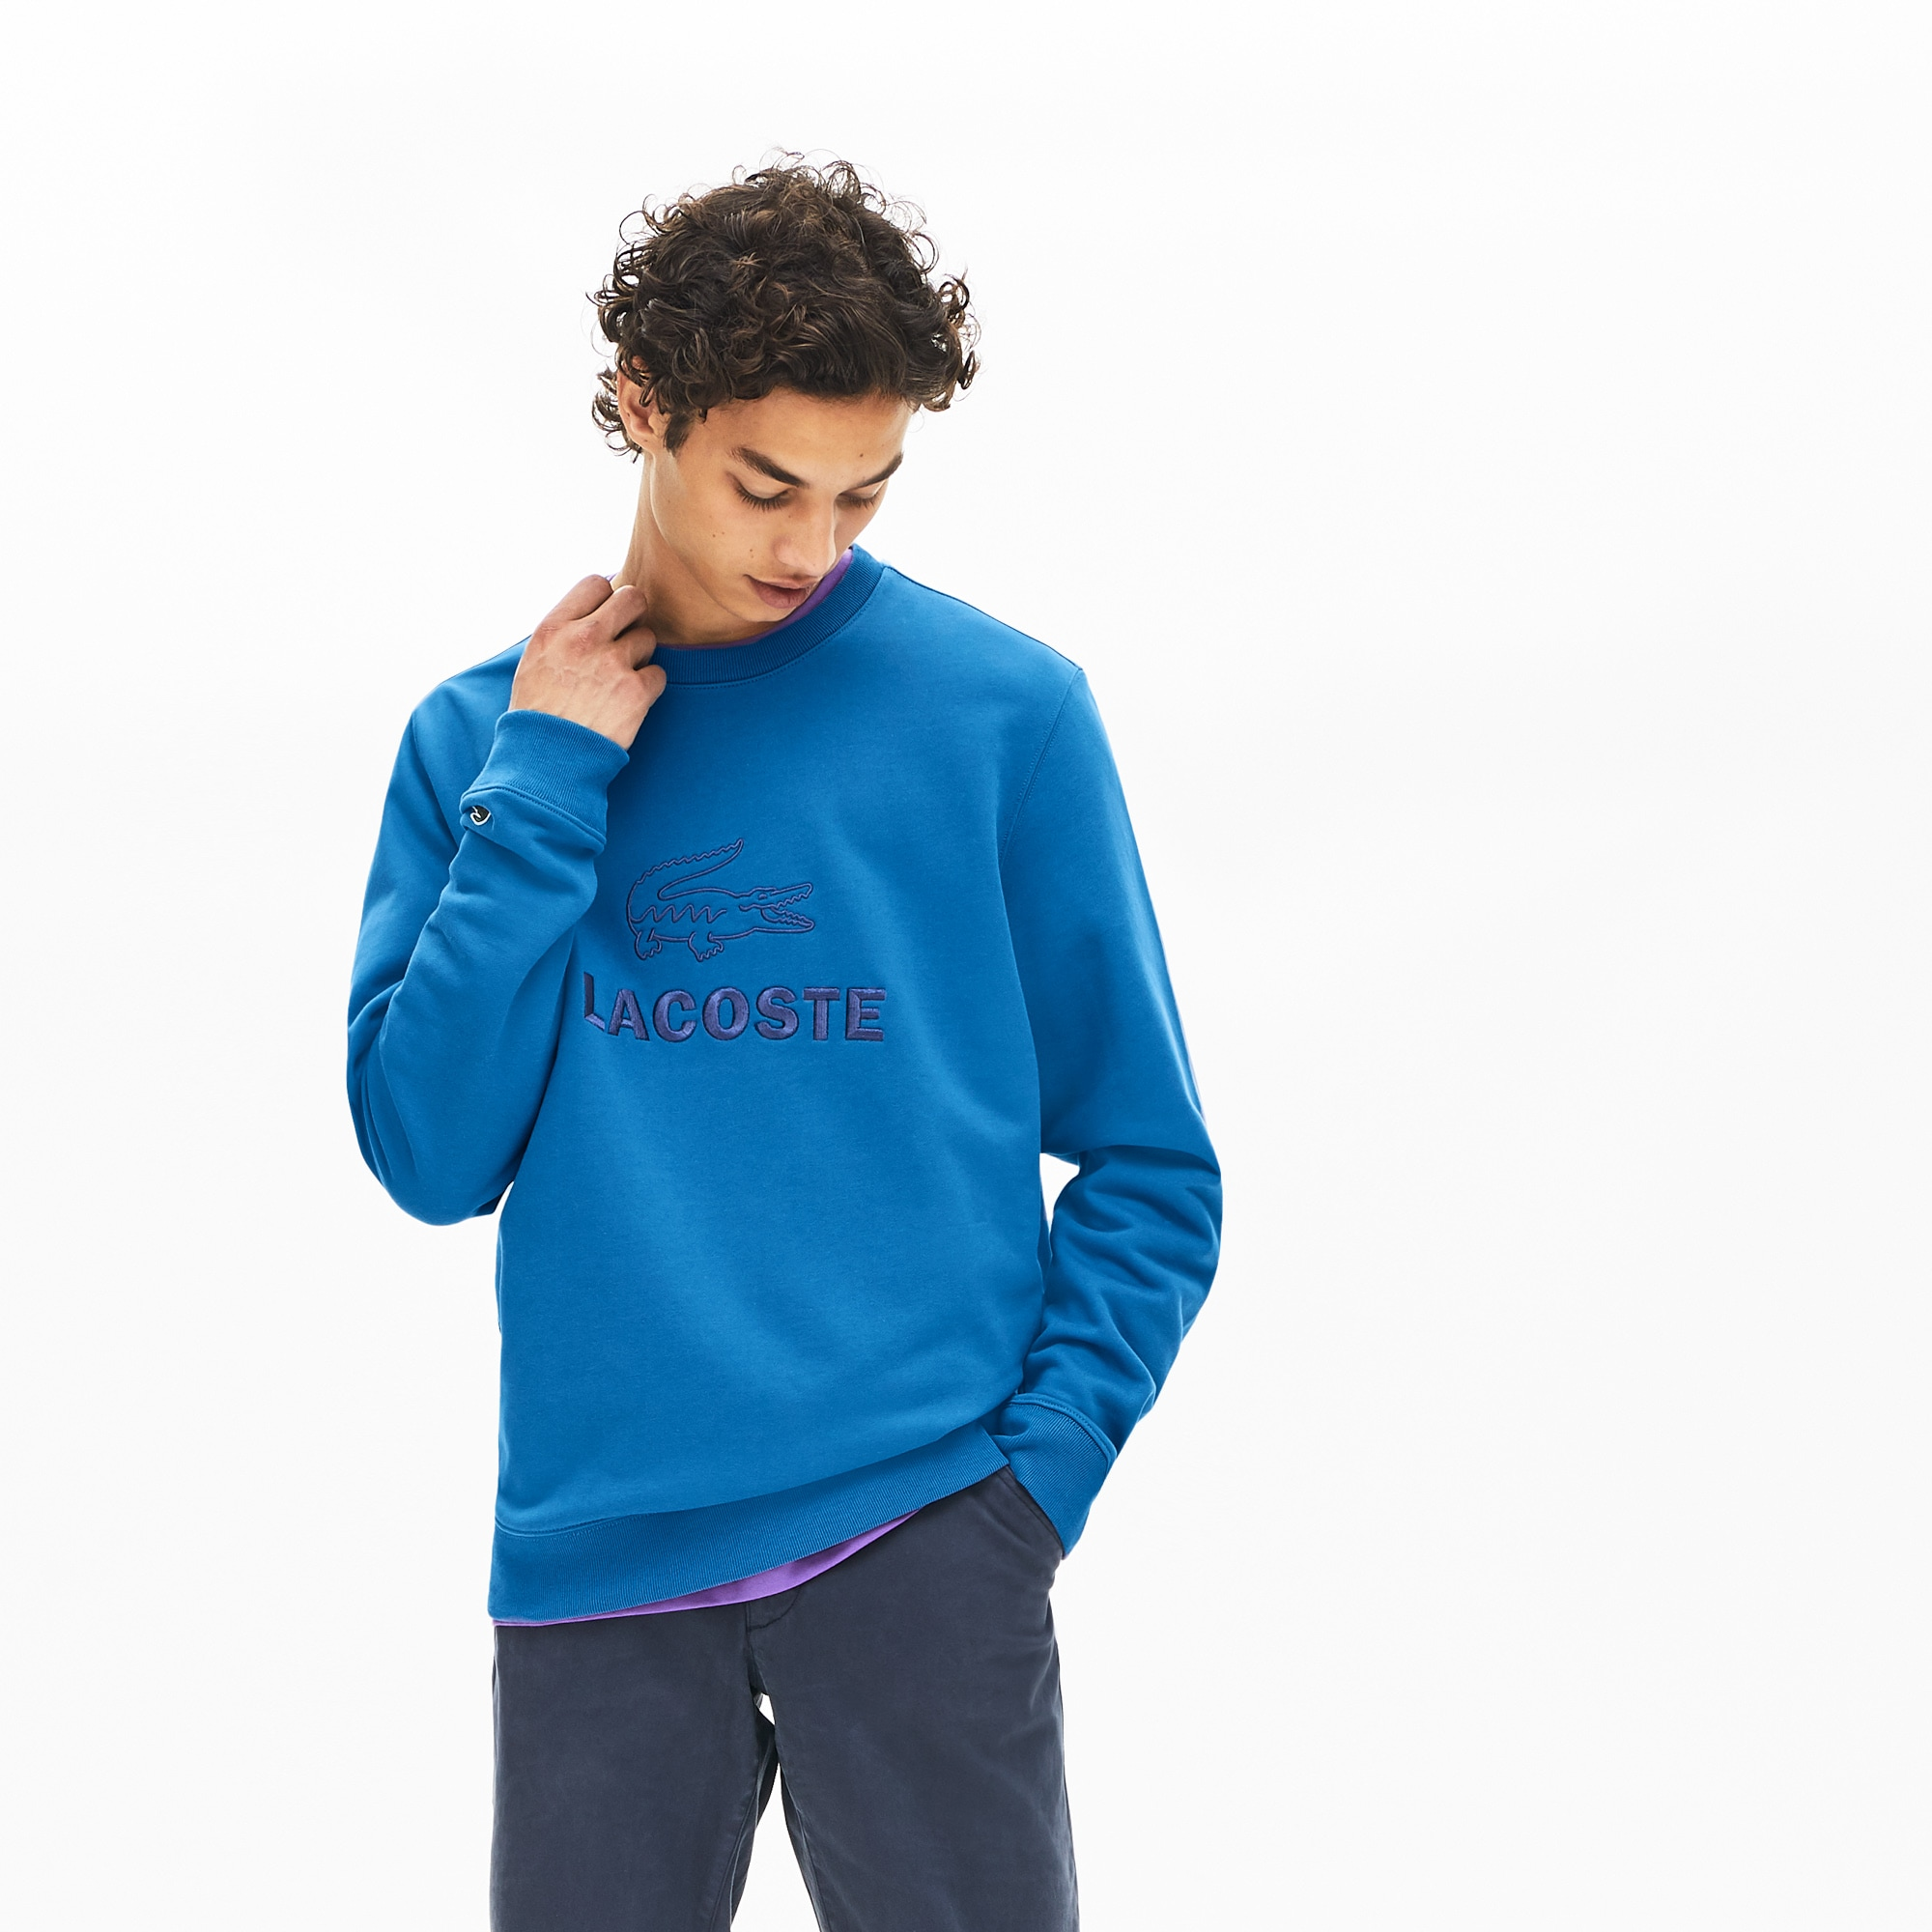 Lacoste Tops Men's Embroidered-Logo Cotton Fleece Sweatshirt